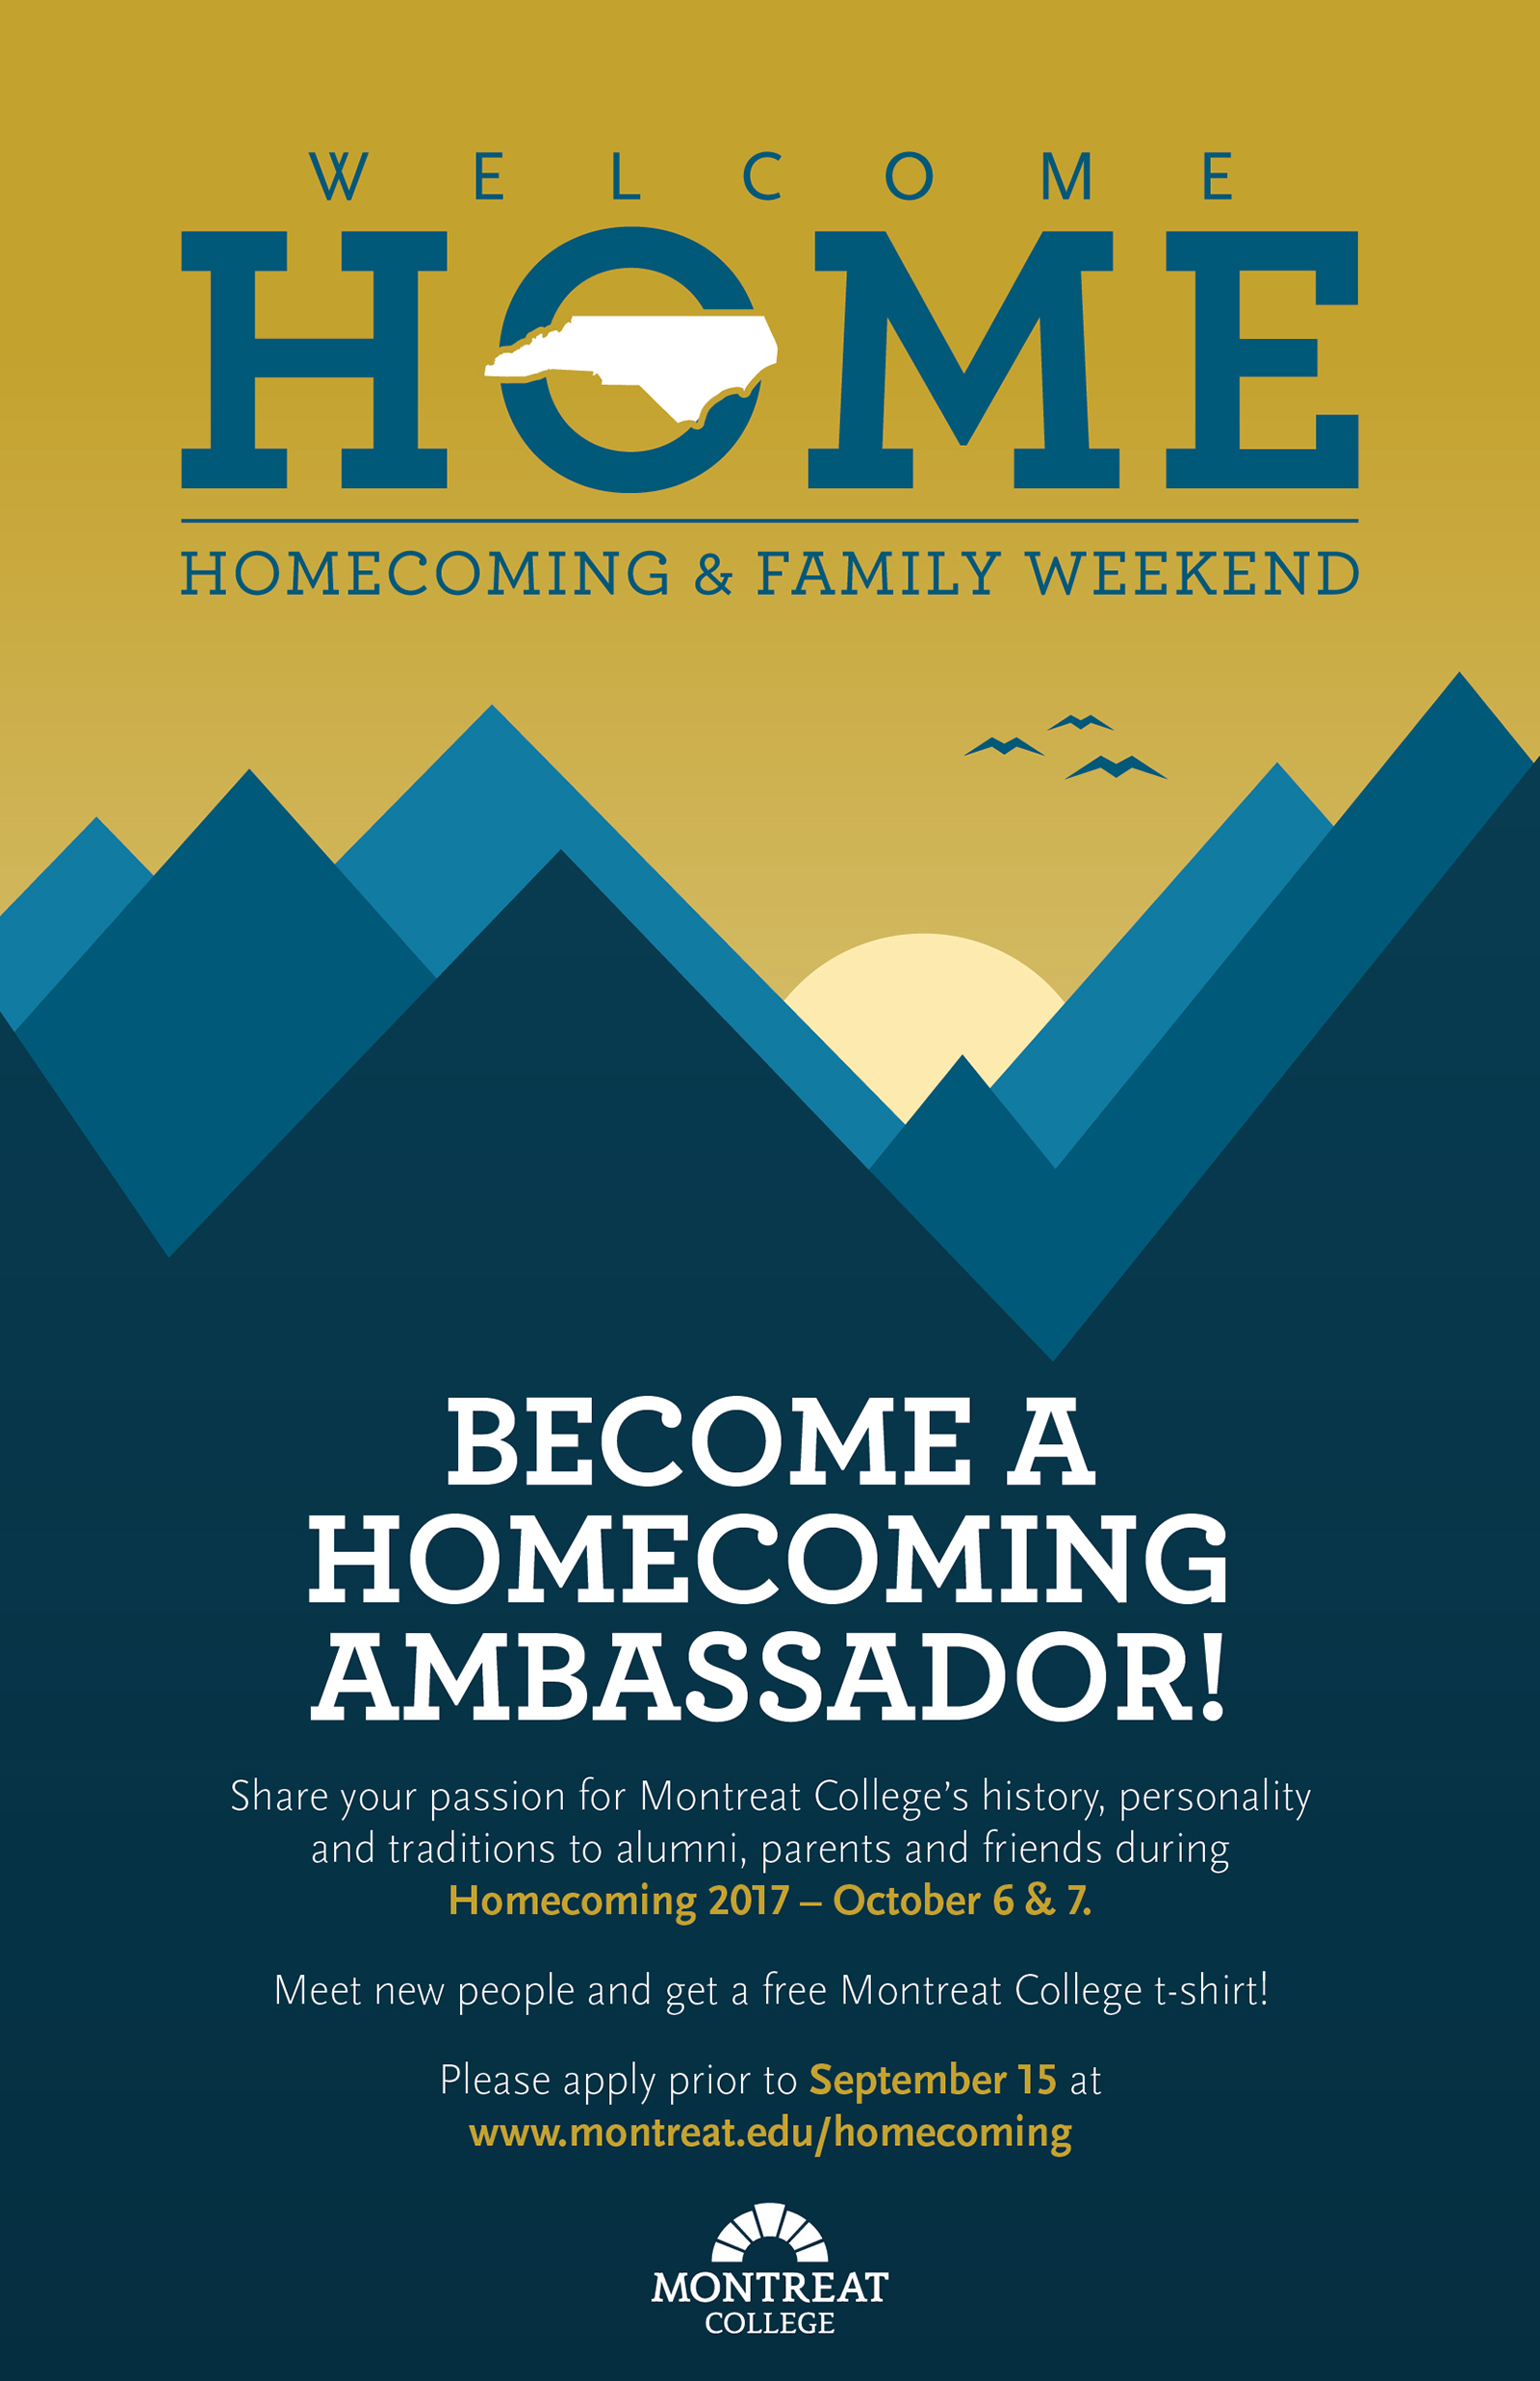 Homecoming_Ambassador_Poster_v1-01.jpg